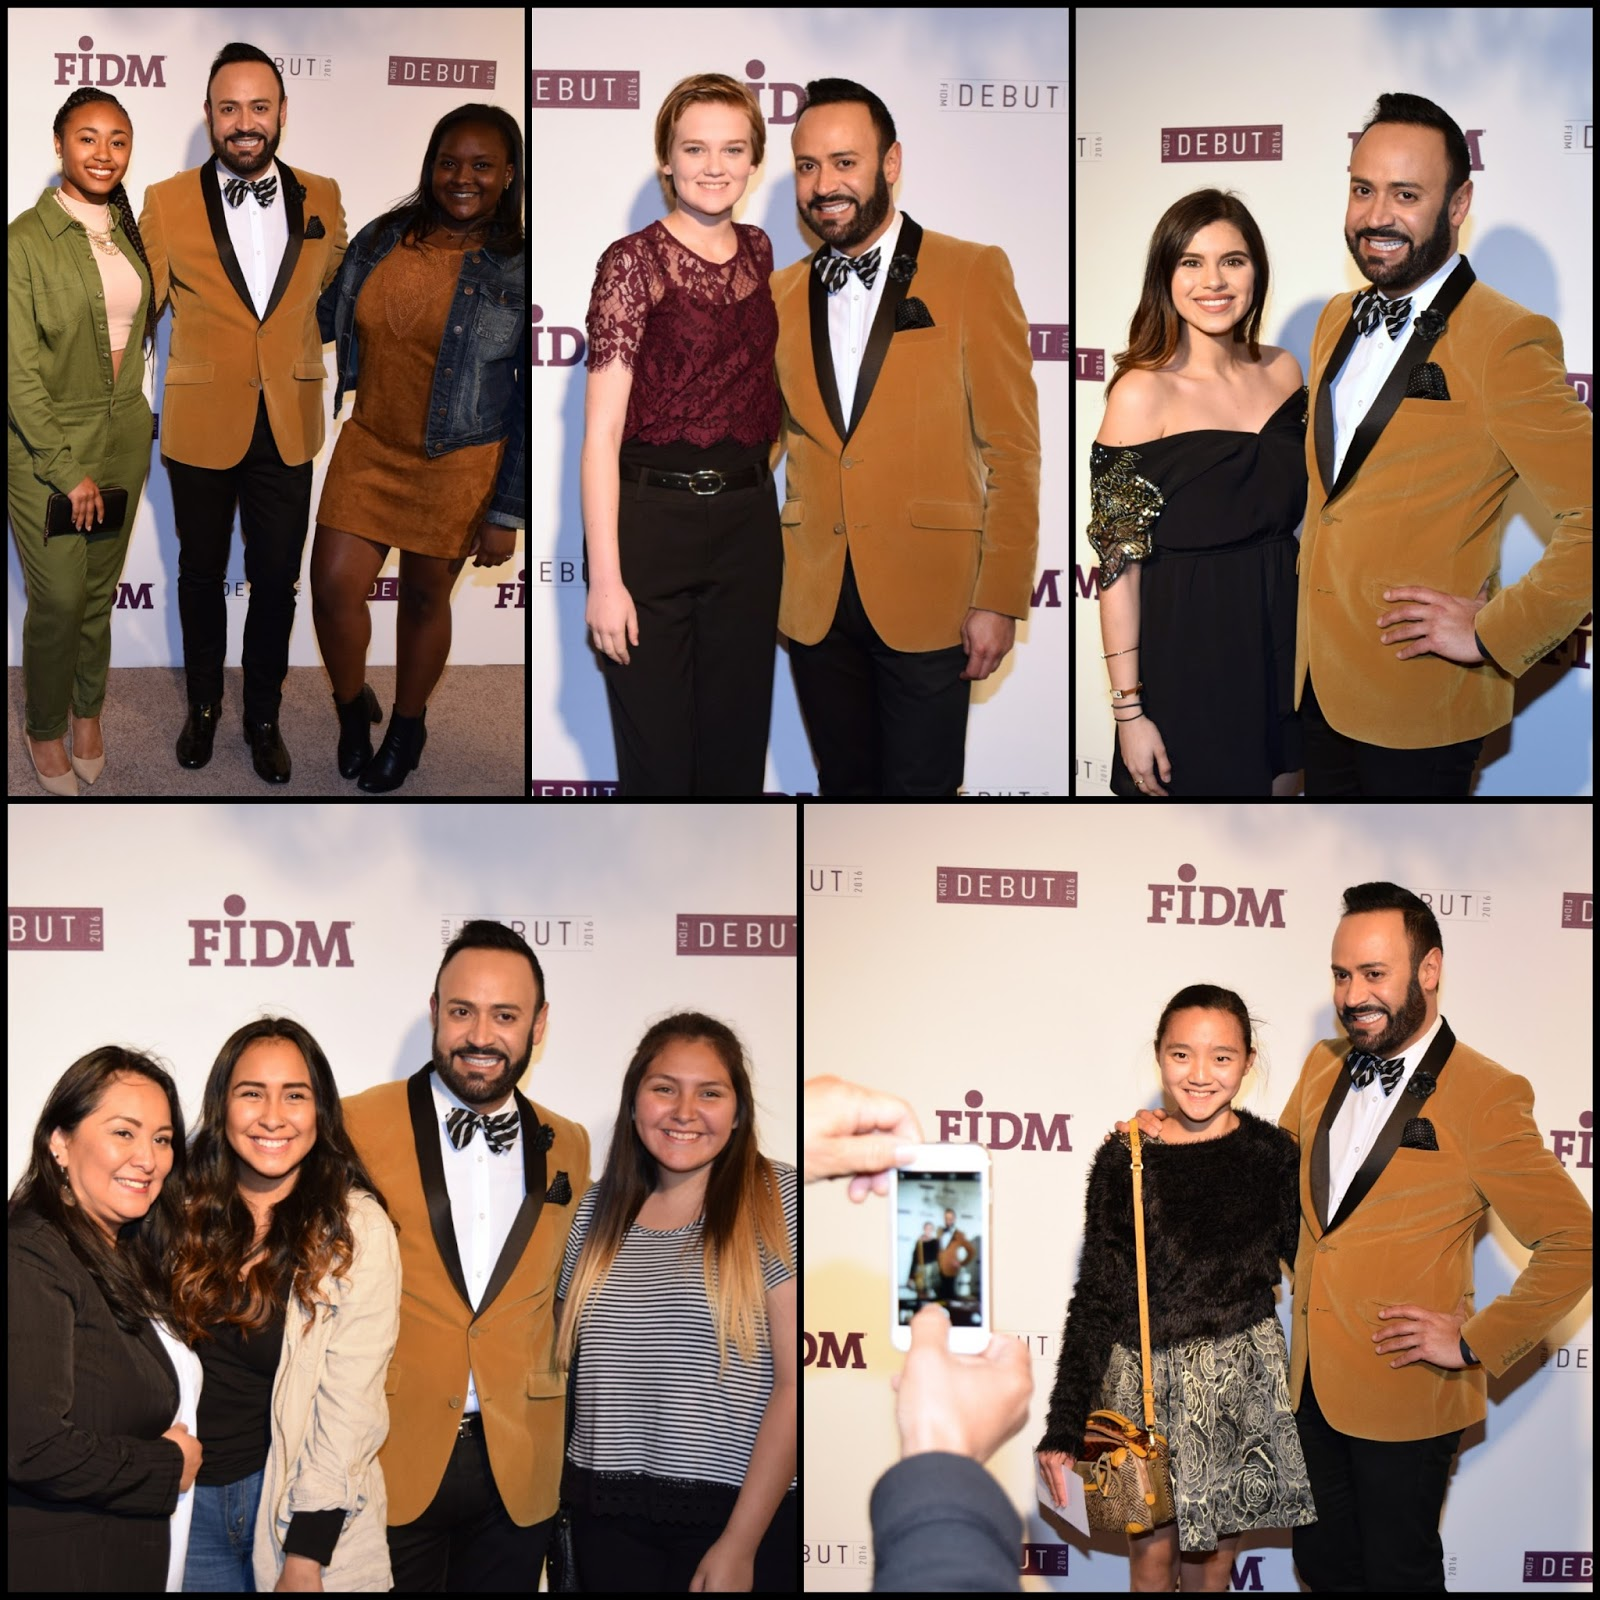 Fidmbut 2016 shows vip meet and greet pics nick verreos thursday day one fidm debit vip tent photo collages from day one of fidm debut 2016 vip tent meet greet the barker hangar santa monica ca kristyandbryce Gallery